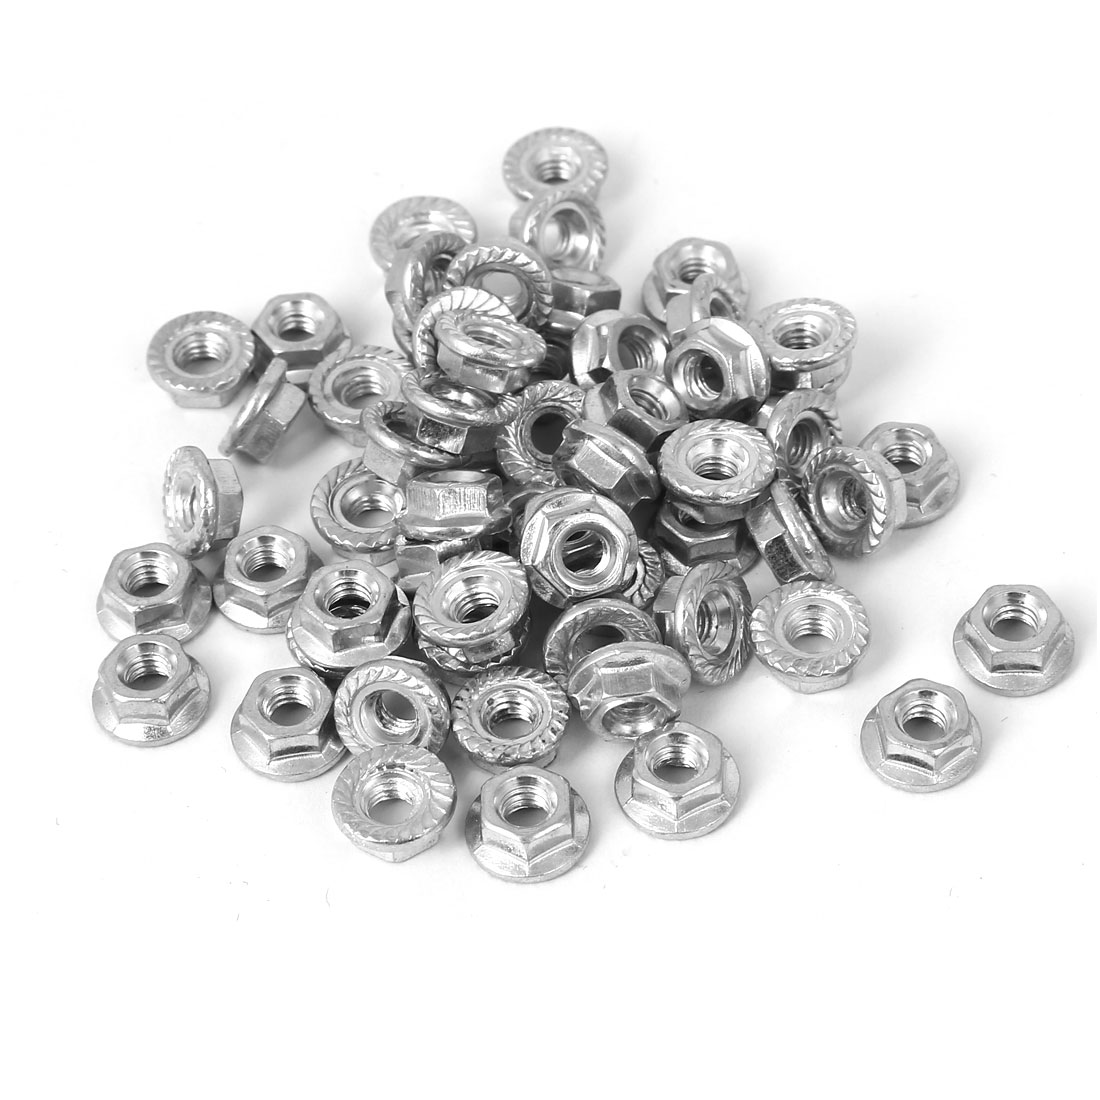 M4 Thread 4mm Height Carbon Steel Serrated Hex Flange Nuts DIN 6923 60PCS